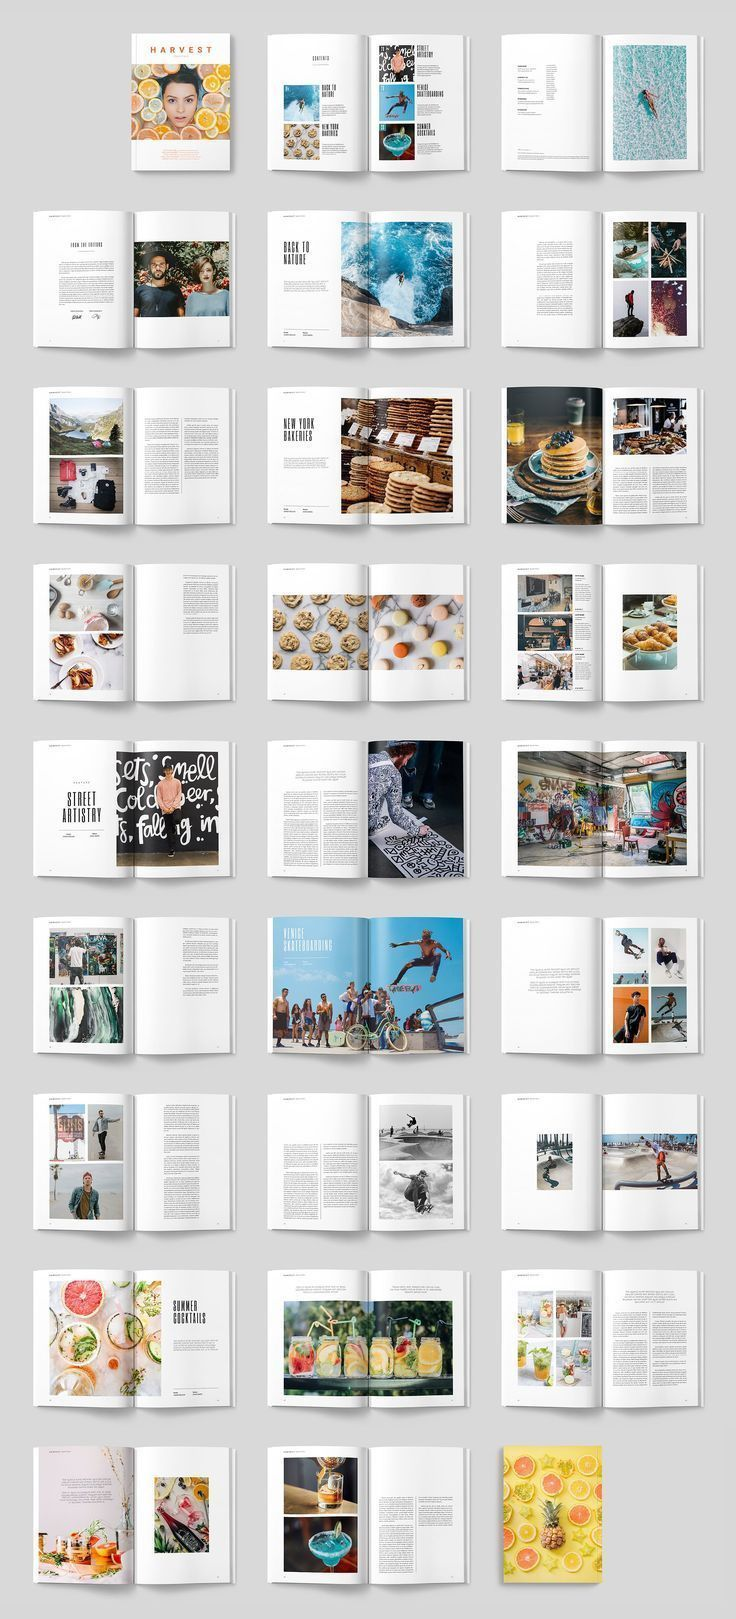 000 Astounding Indesign Magazine Template Free Design  Cover Download Indd Cs5Full